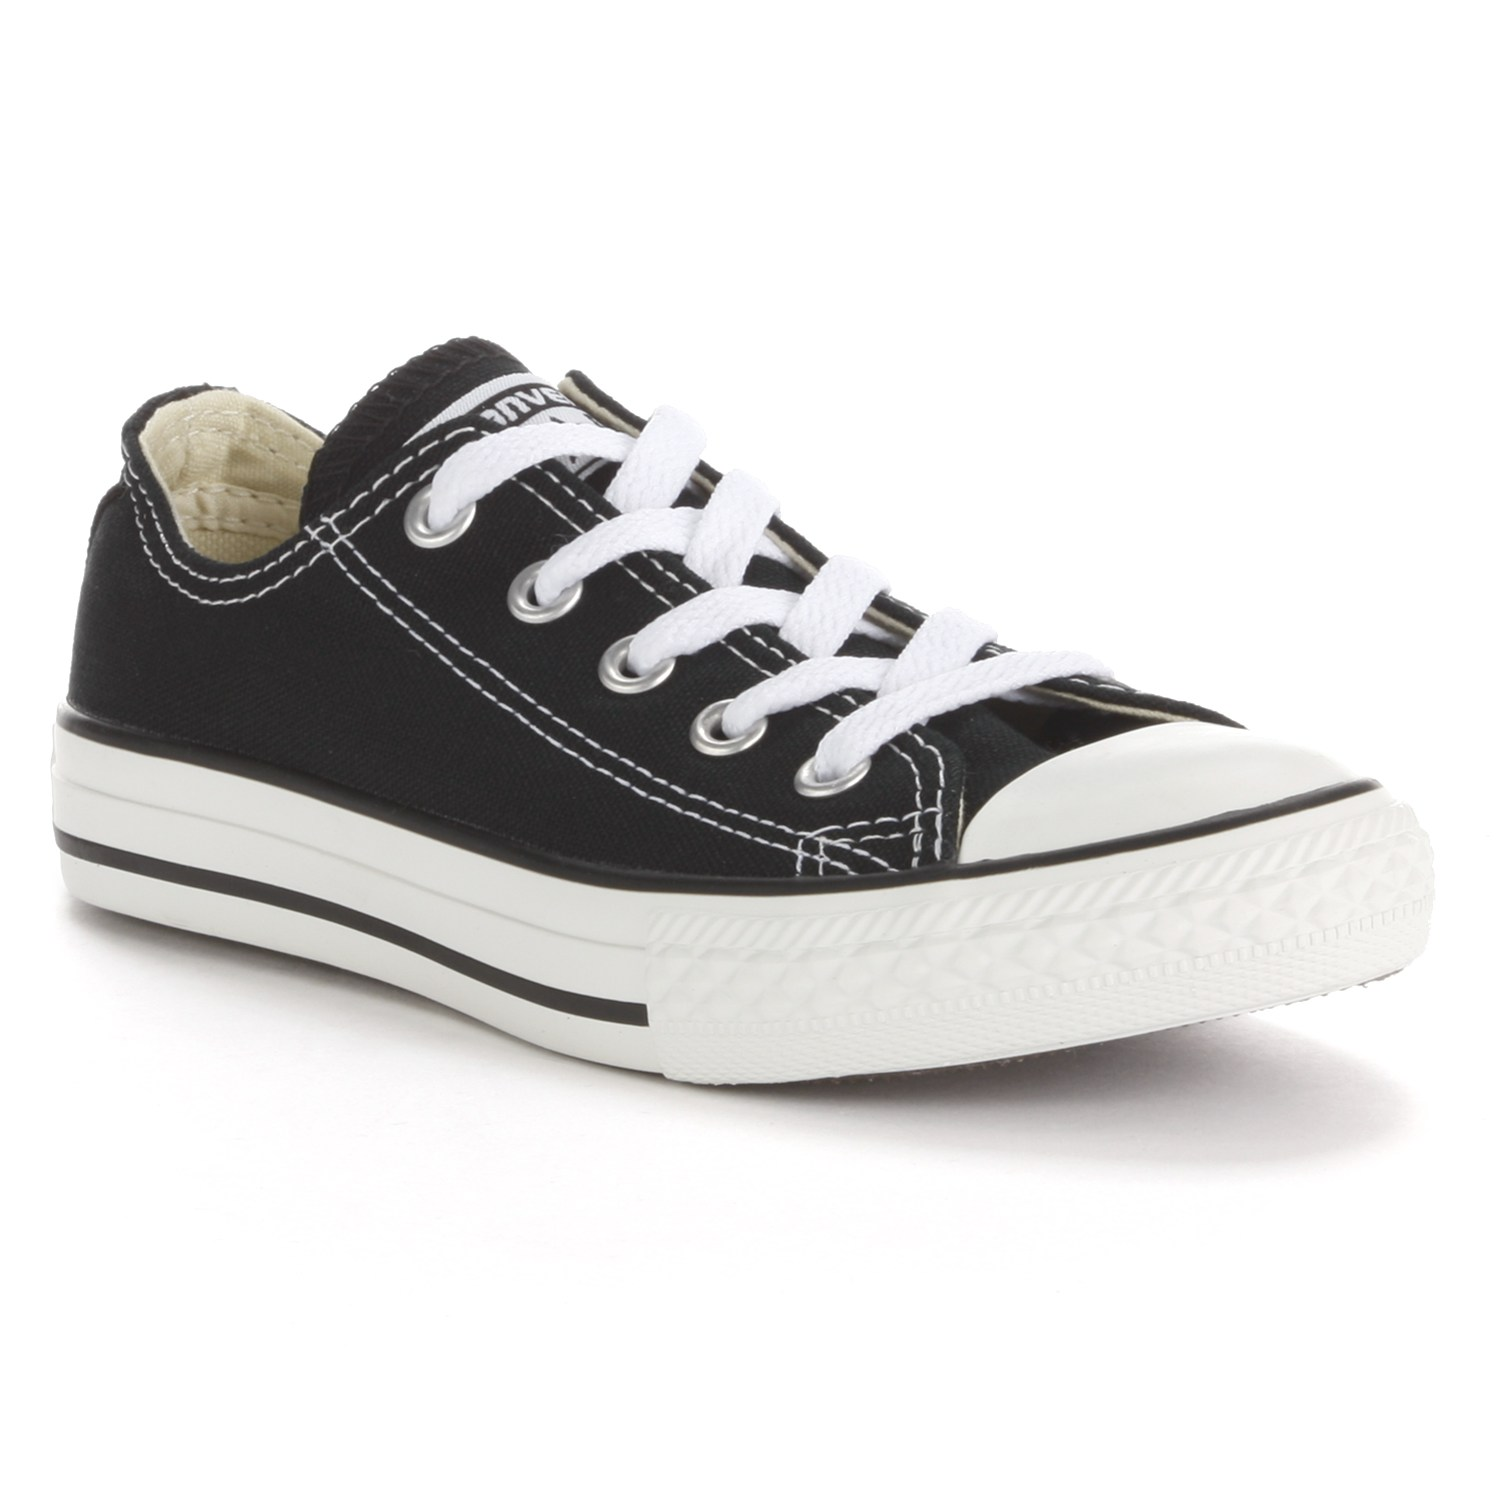 converse for girls converse clothing, shoes u0026 accessories | kohlu0027s SWQYLPE